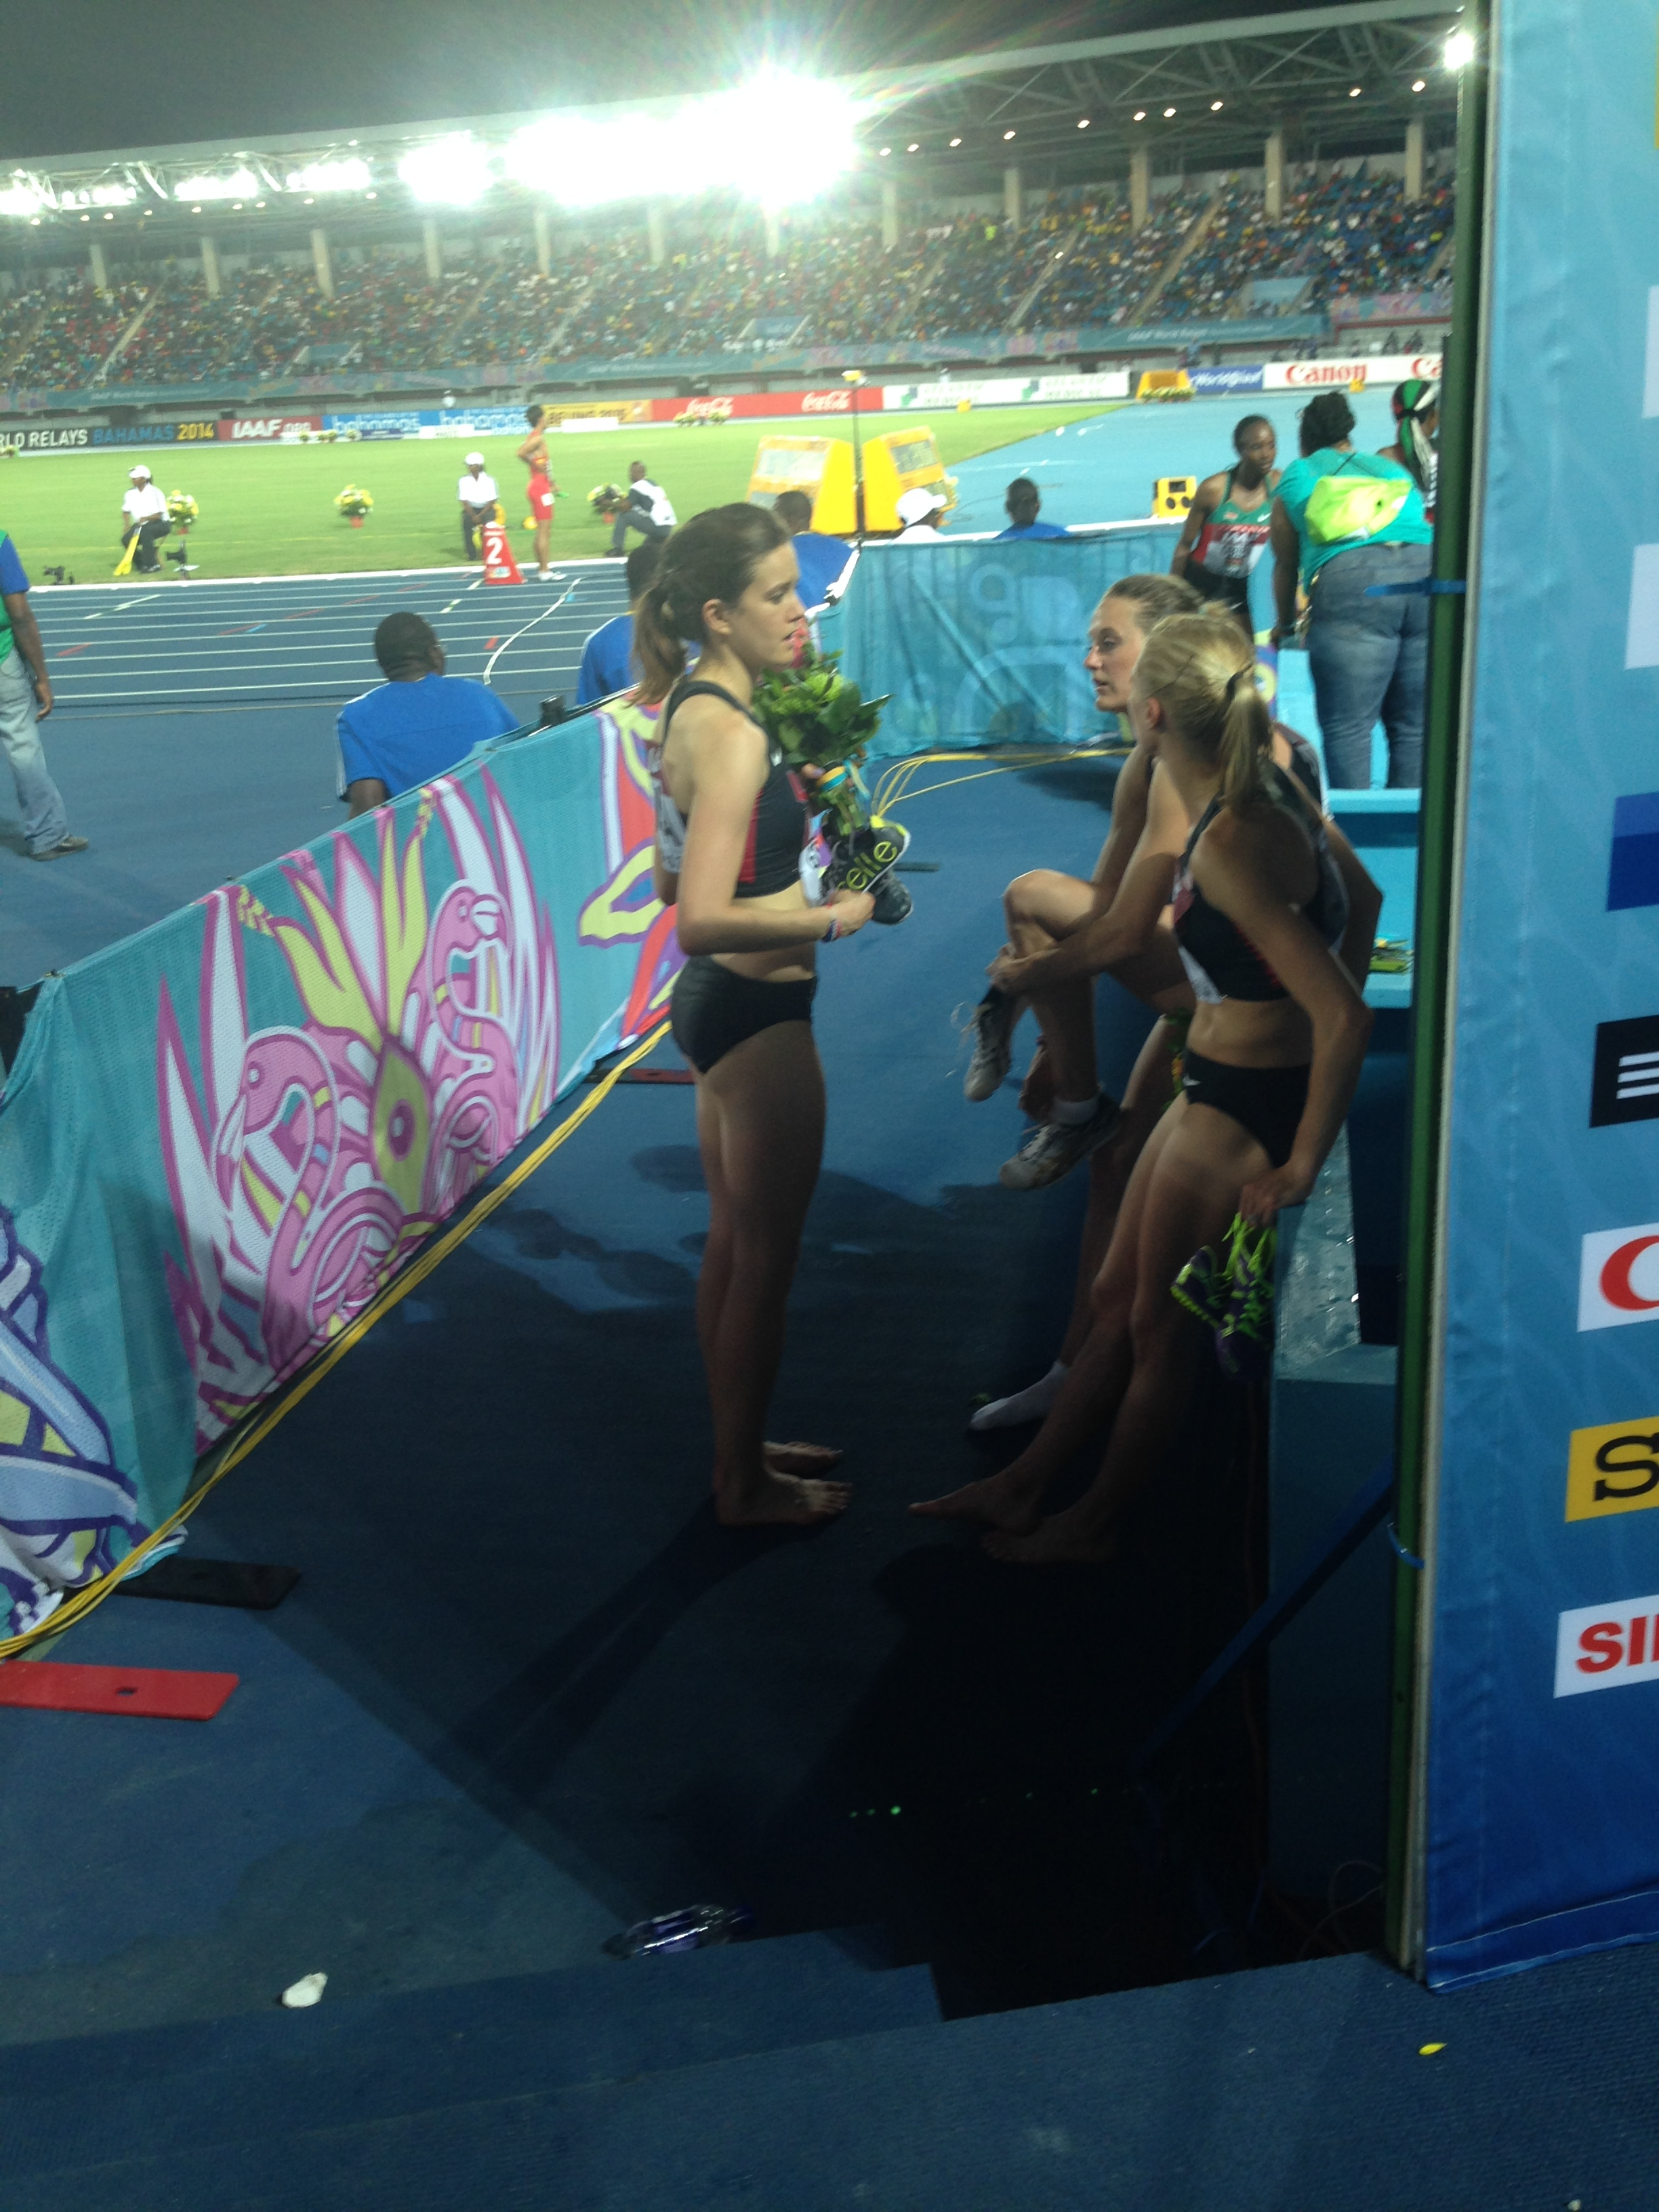 Three of the four U.S. 4x1500 racers seeking a quiet moment after the race